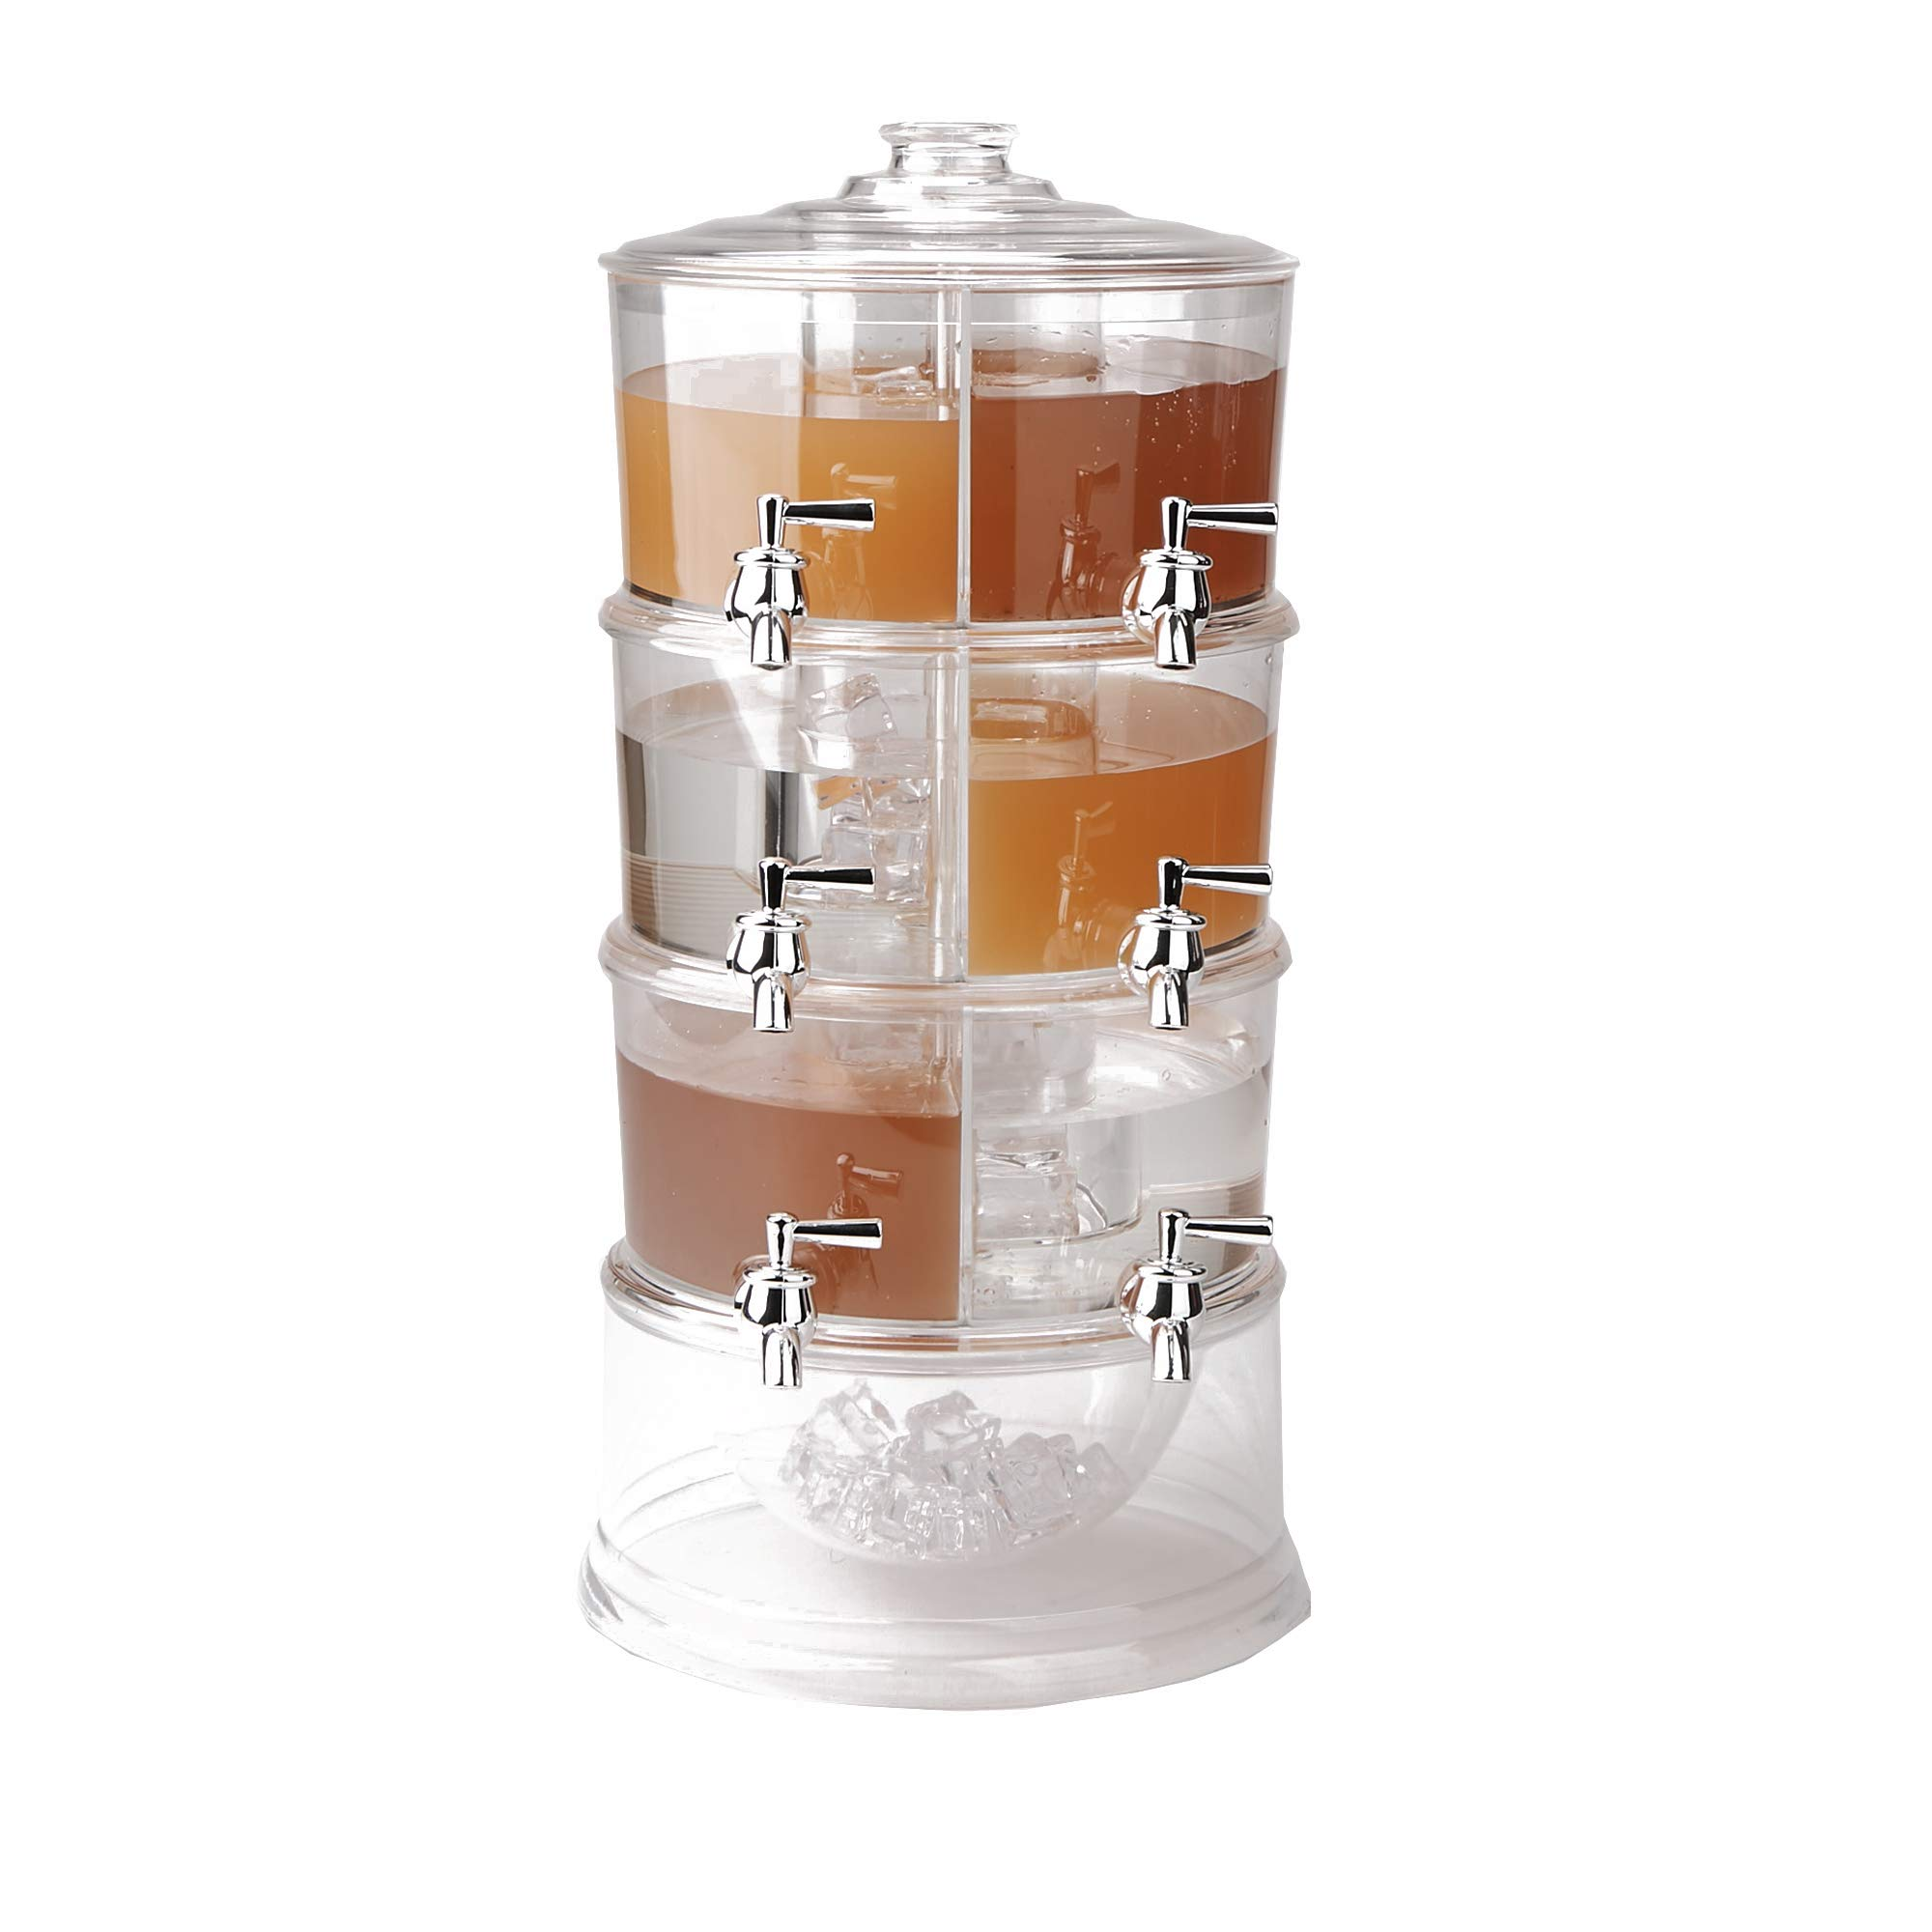 Mind Reader BEVD6C-CLR Dispenser, 3 Tier Stackable Drink Holder with Lids, Acrylic 6 Compartment Beverage Display with Spigots, Clear, One Size,